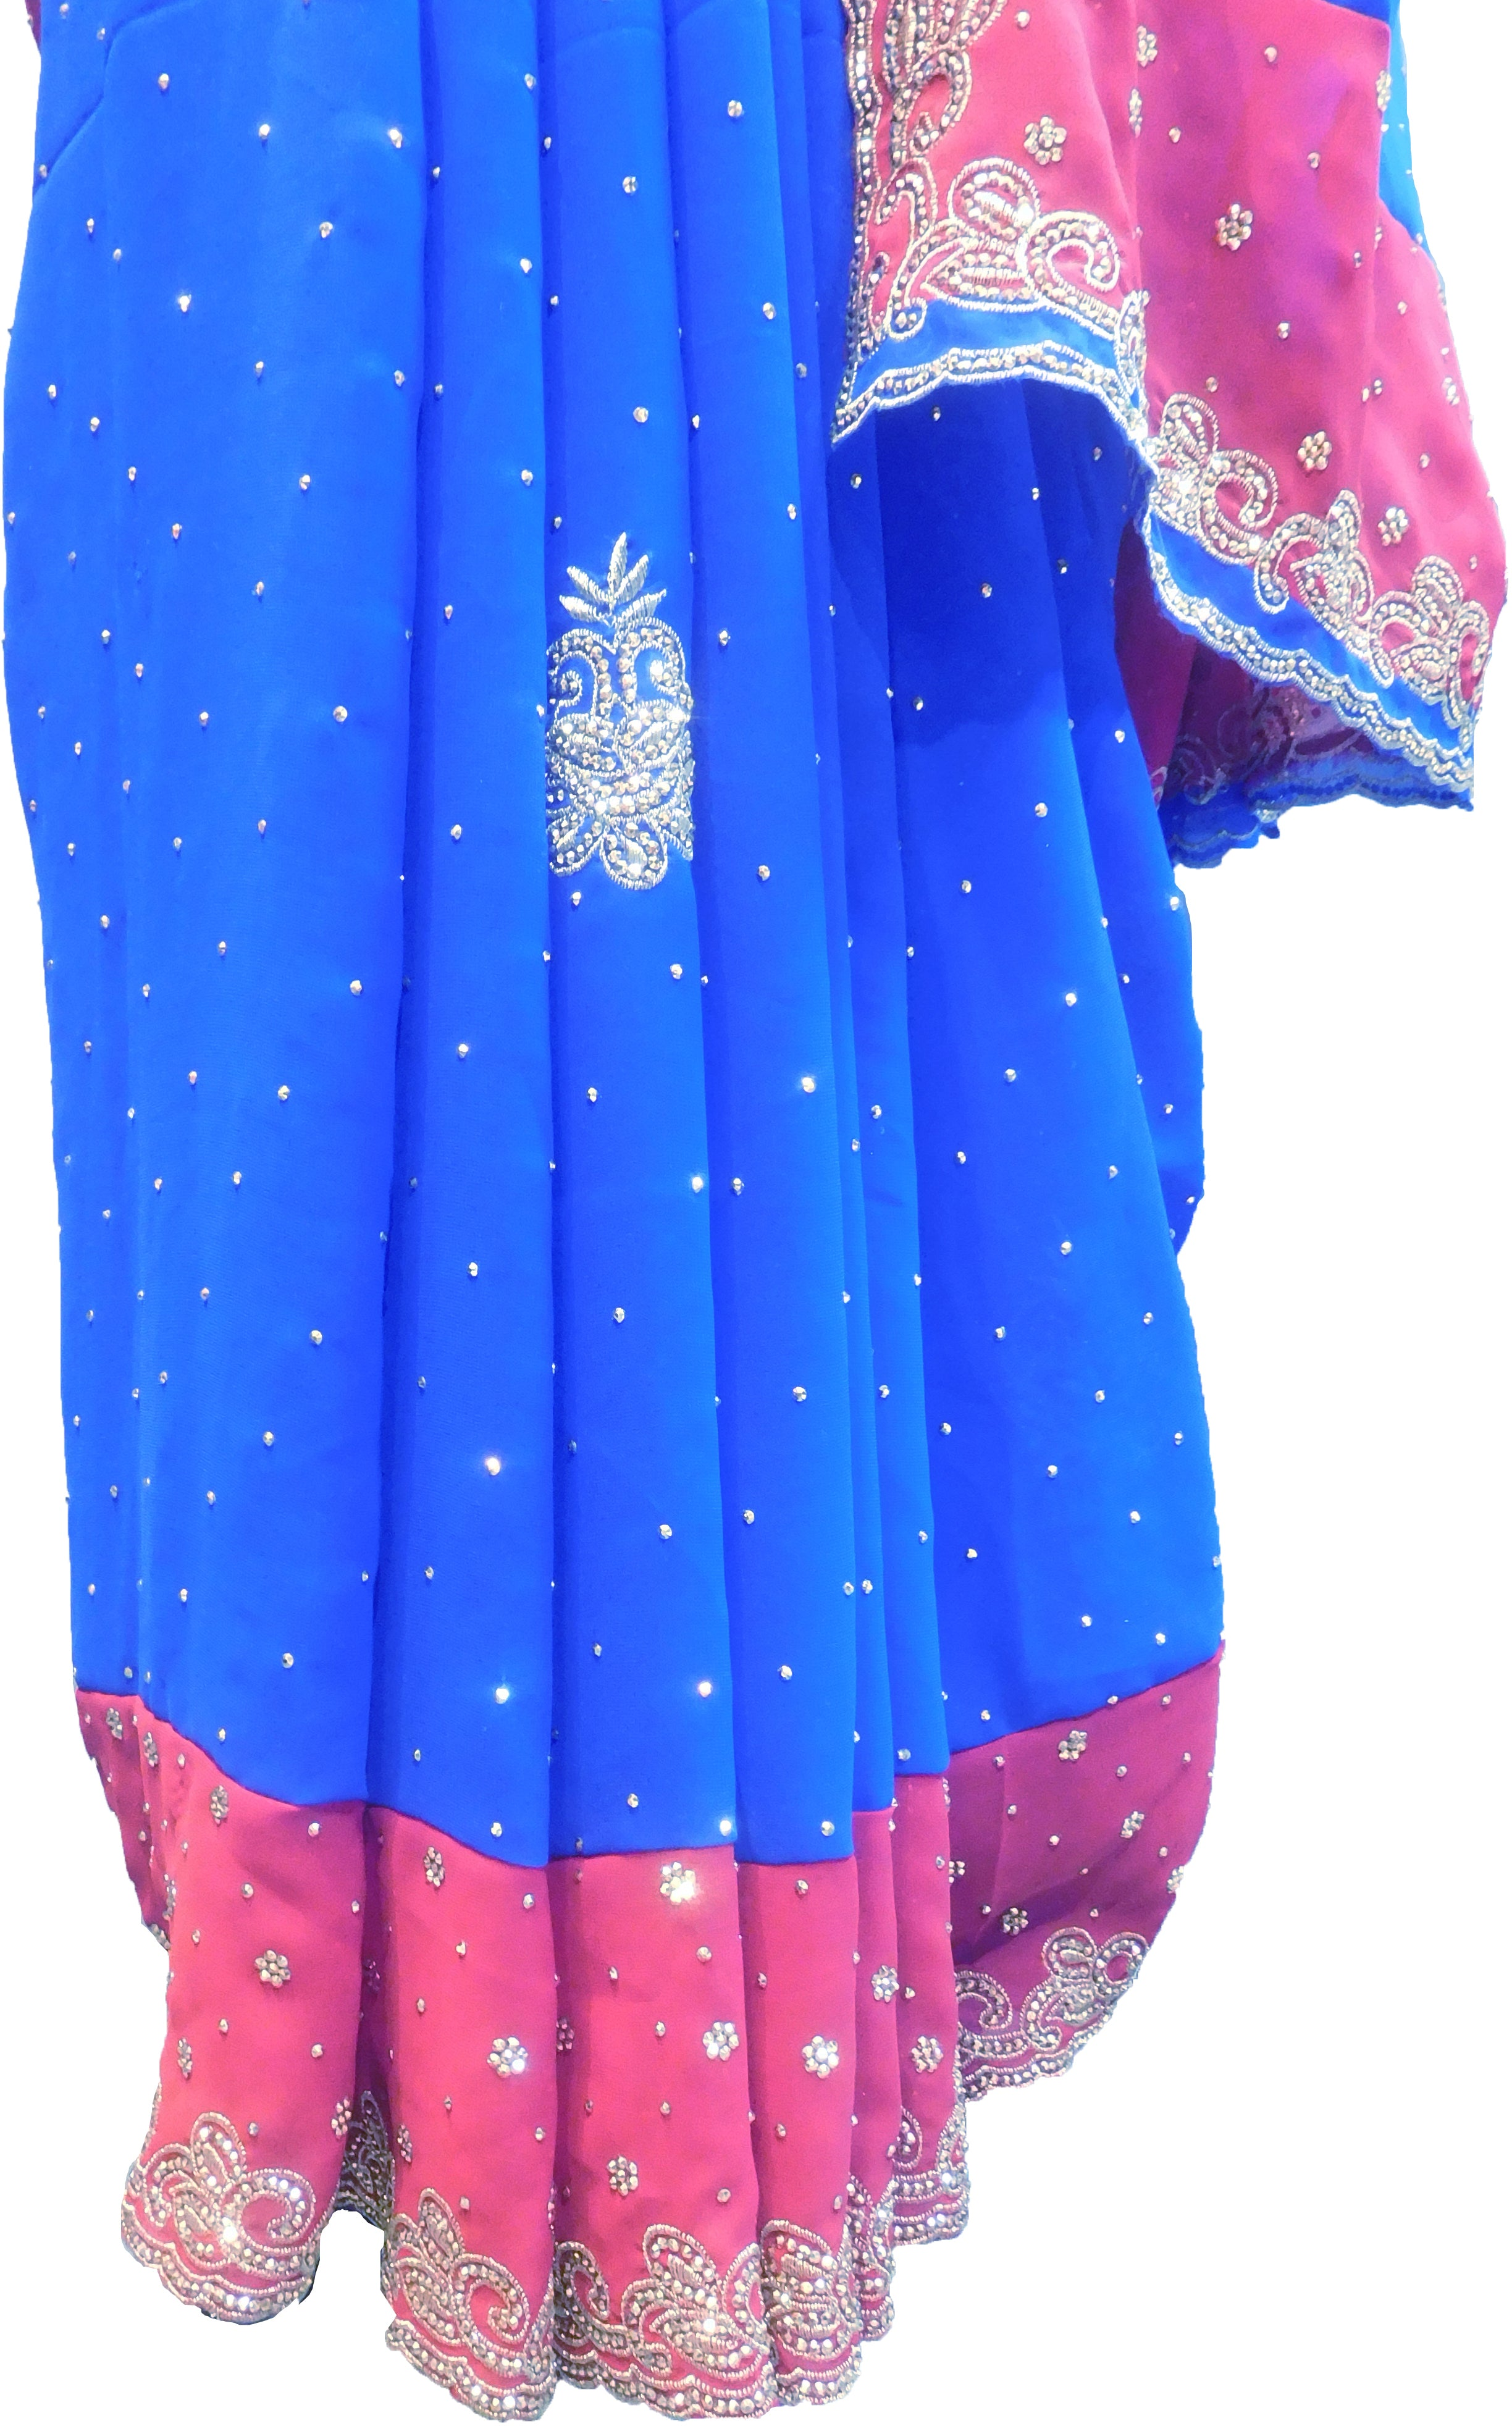 SMSAREE Blue & Red Designer Wedding Partywear Crepe (Chinon) Stone & Zari Hand Embroidery Work Bridal Saree Sari With Blouse Piece F319